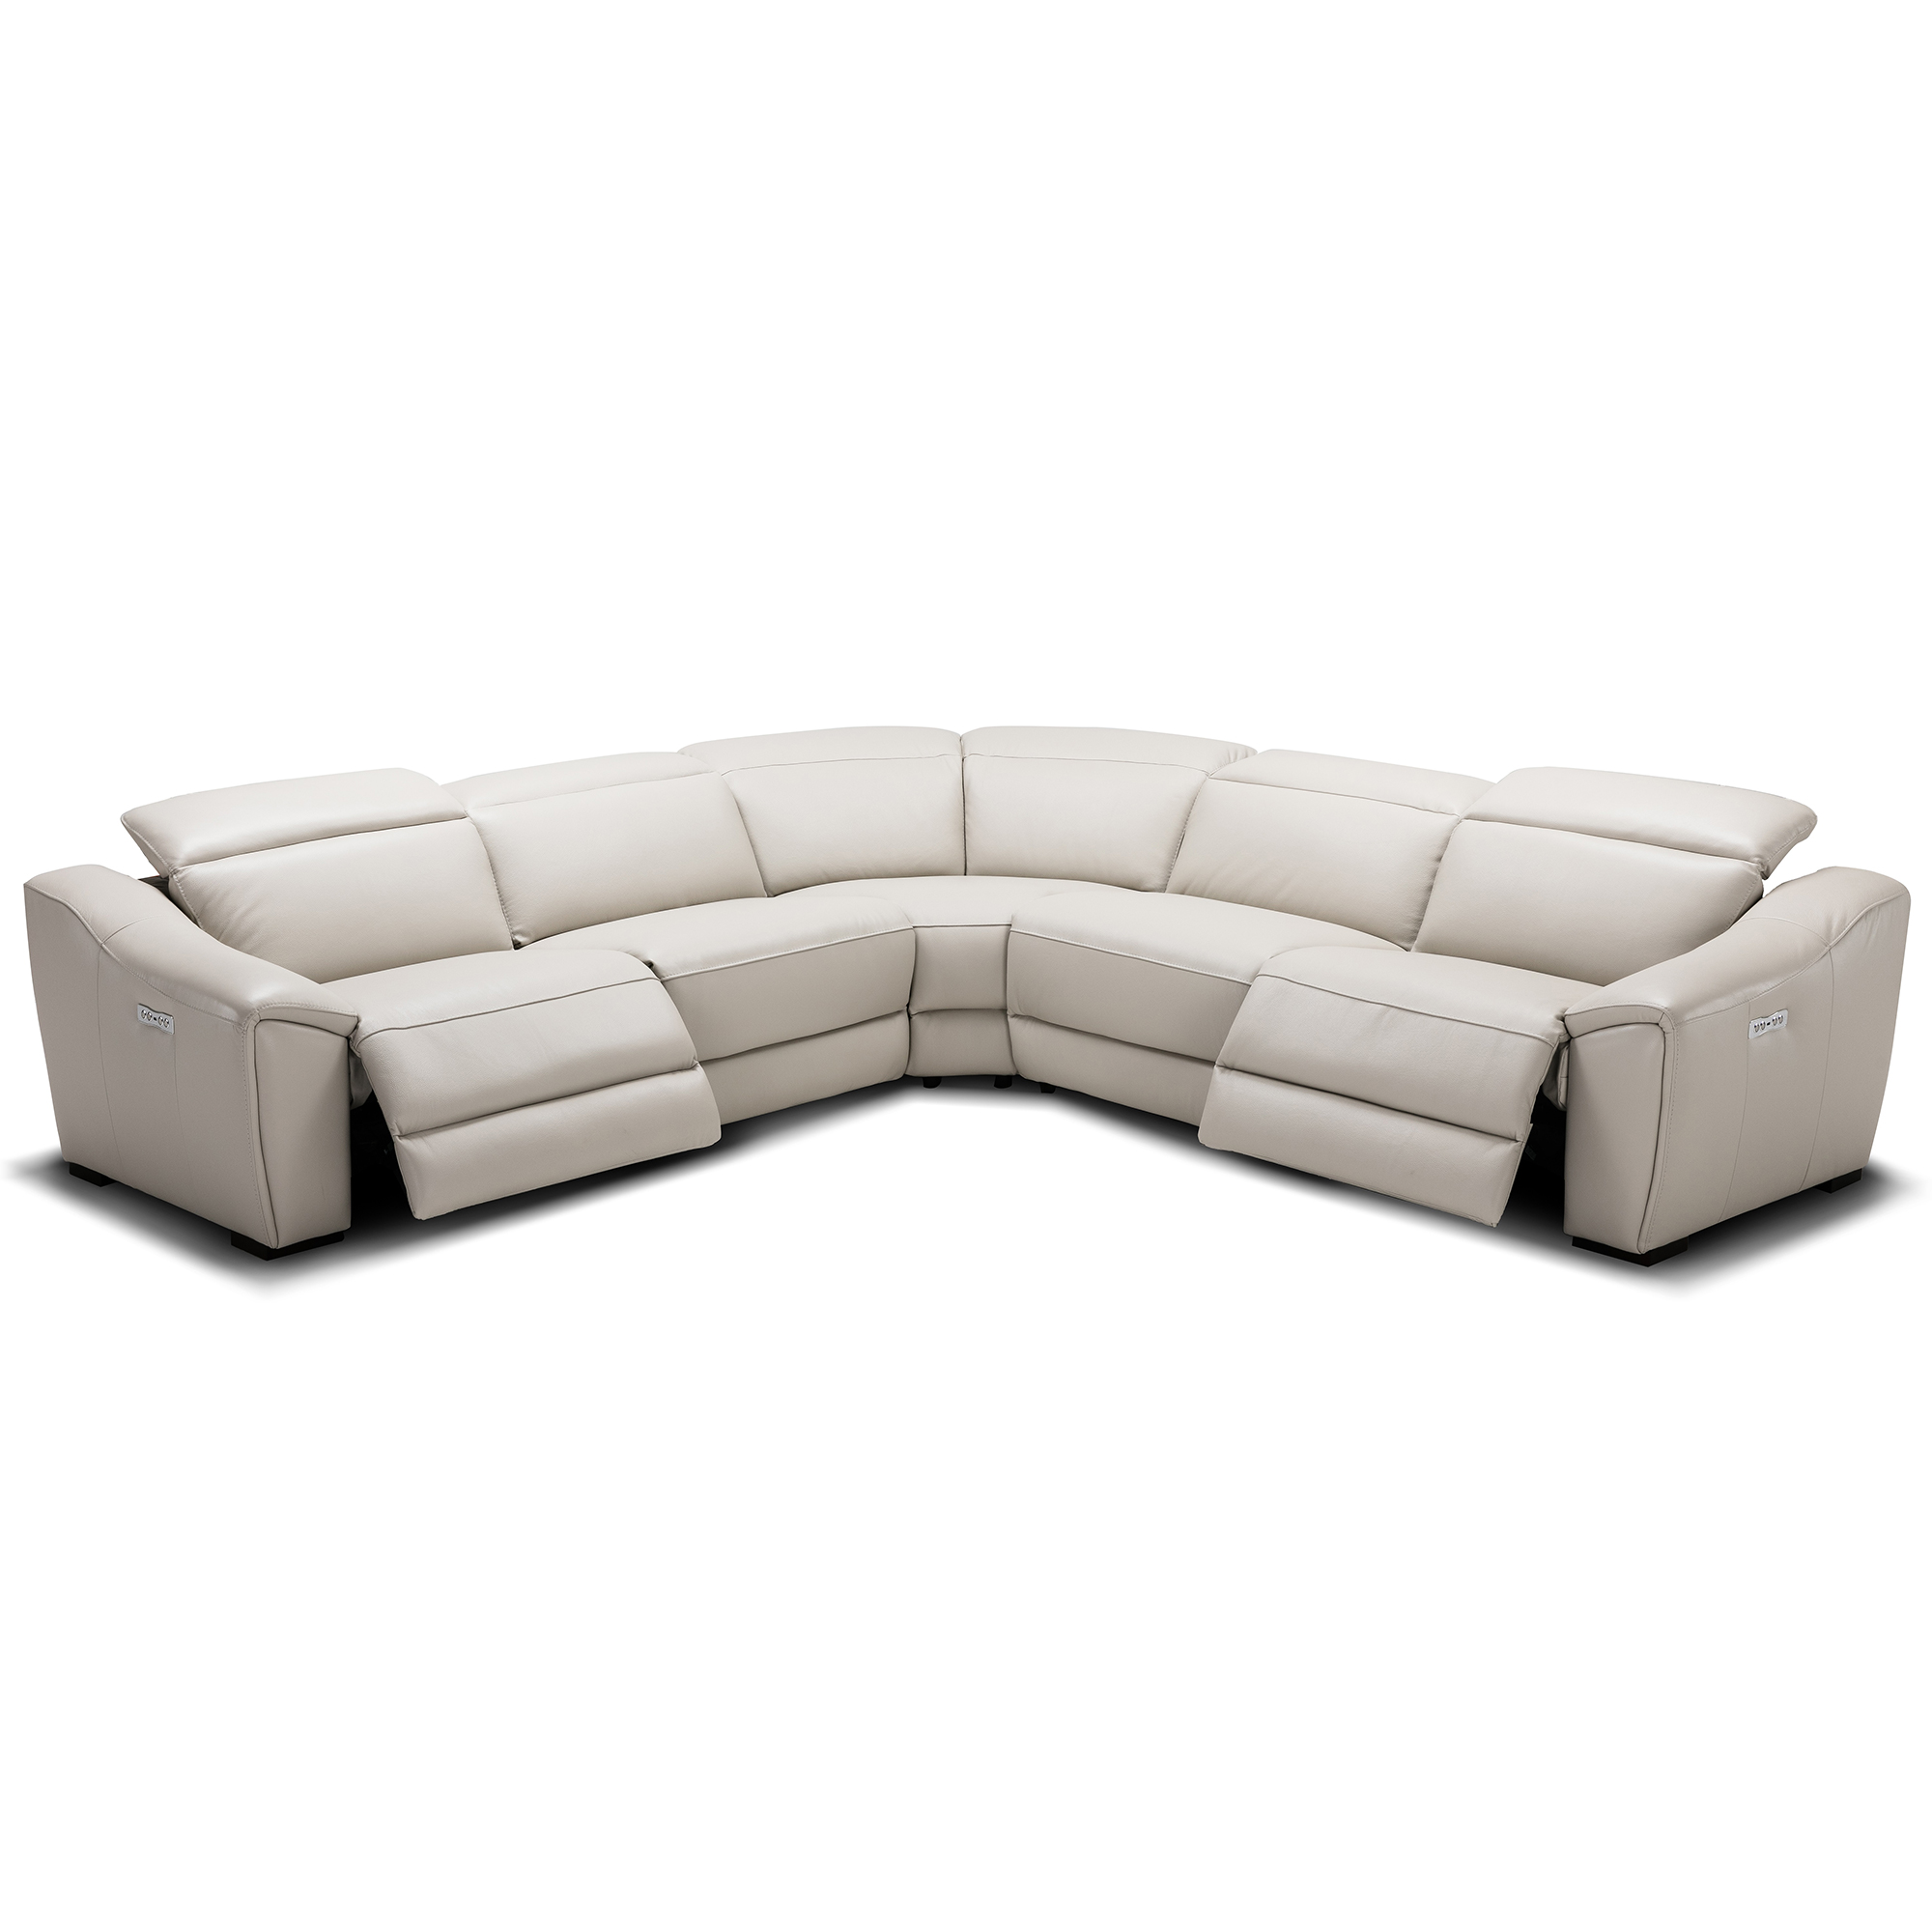 leather motion sectional sofa Avariiorg Home Design Best Ideas